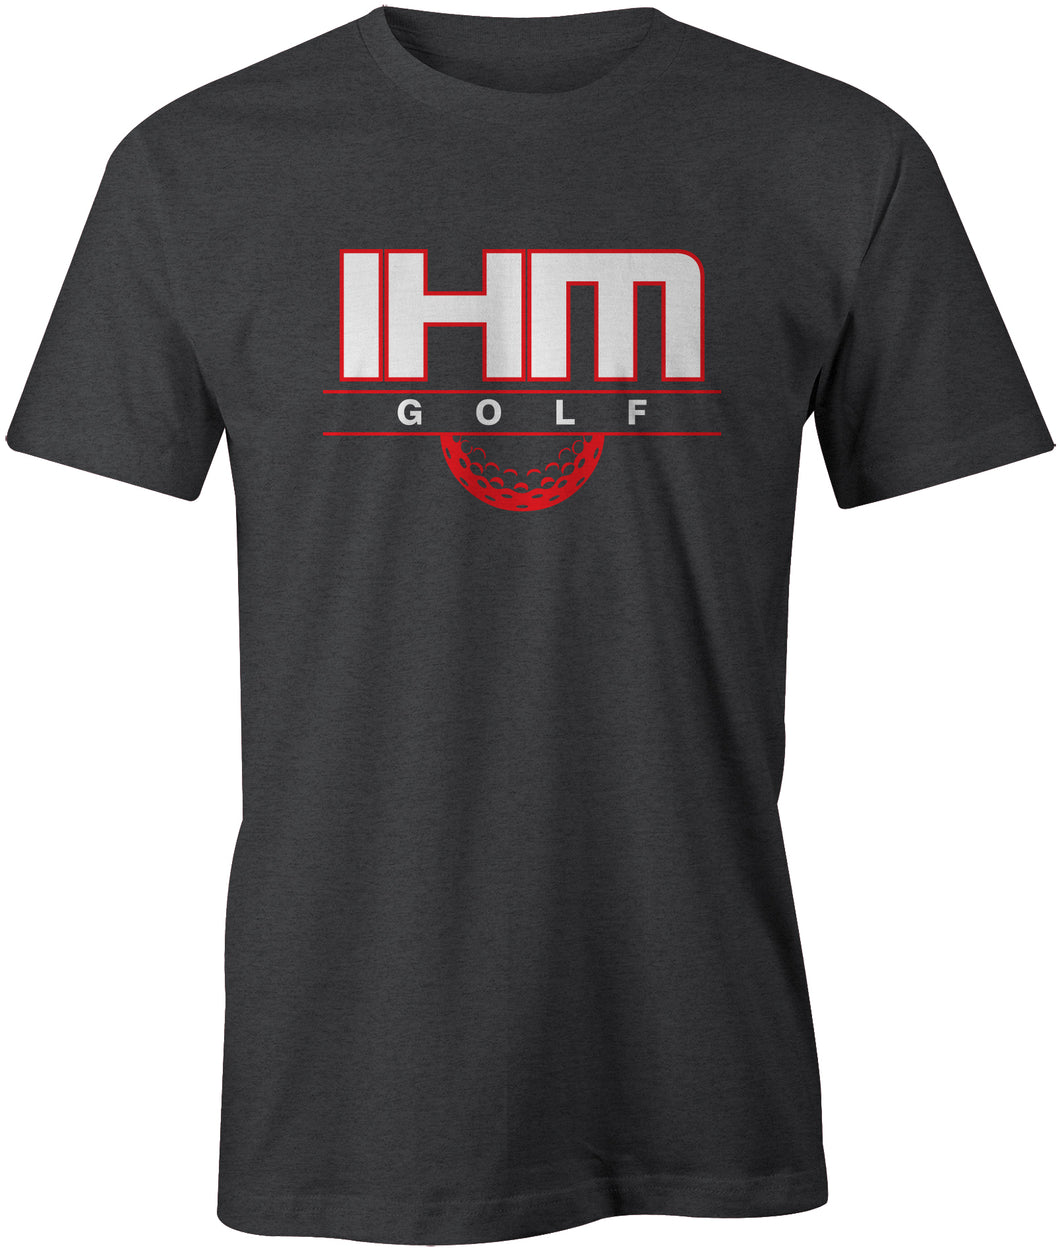 Dark Heather Golf T-Shirt